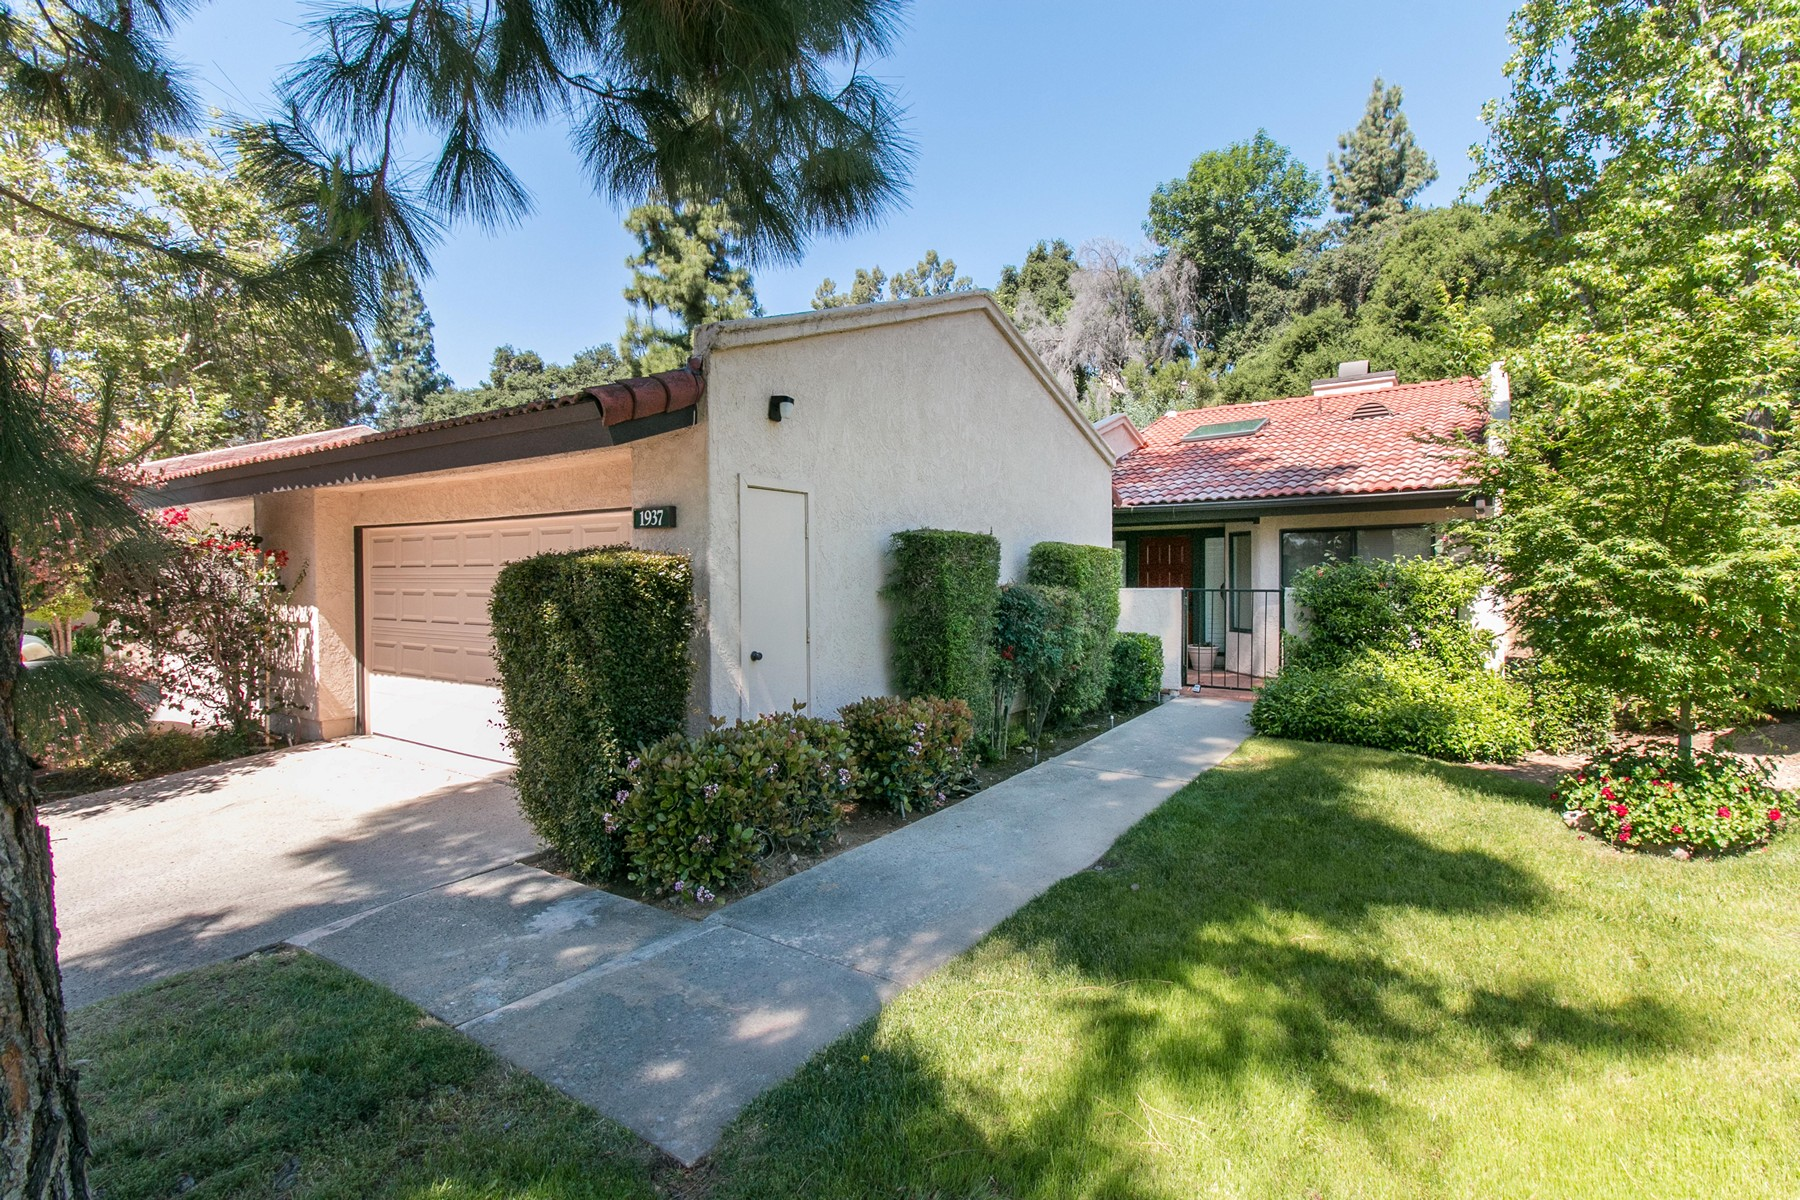 Single Family Homes for Active at 1937 Lockhaven Way, Claremont, California 91711 1937 Lockhaven Way Claremont, California 91711 United States